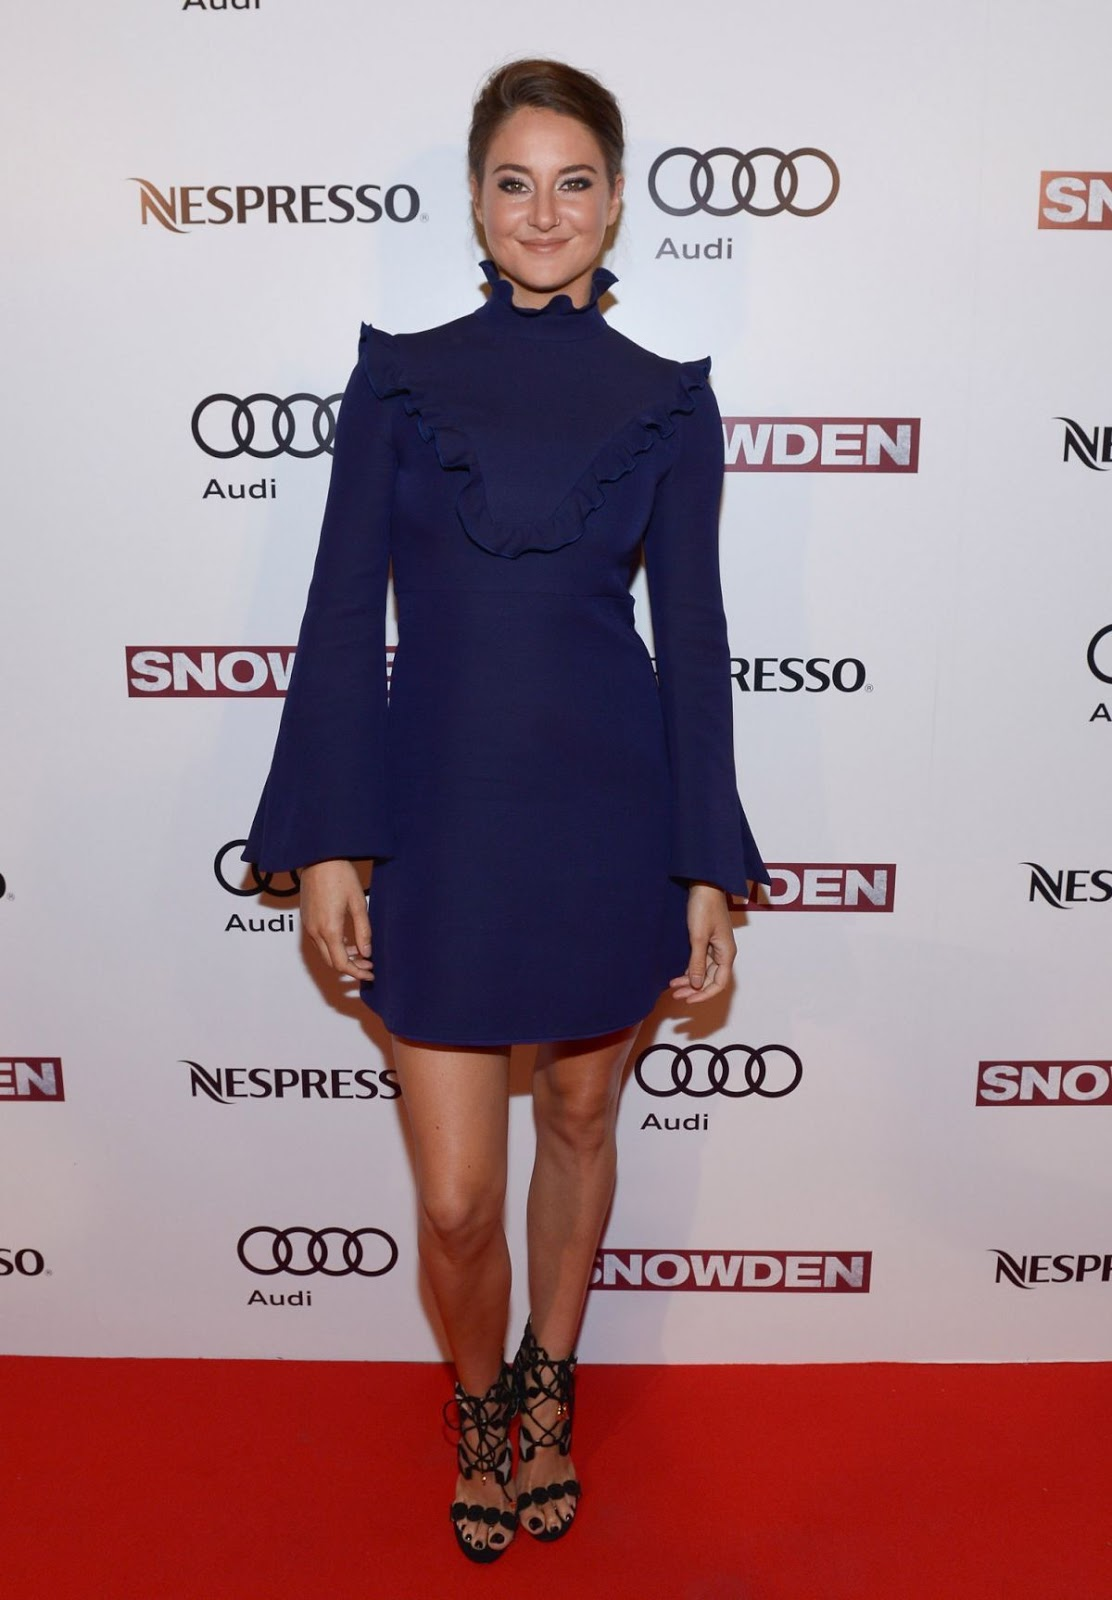 HD Images Shailene Woodley in Blue dress At Snowden Preparty In Toronto